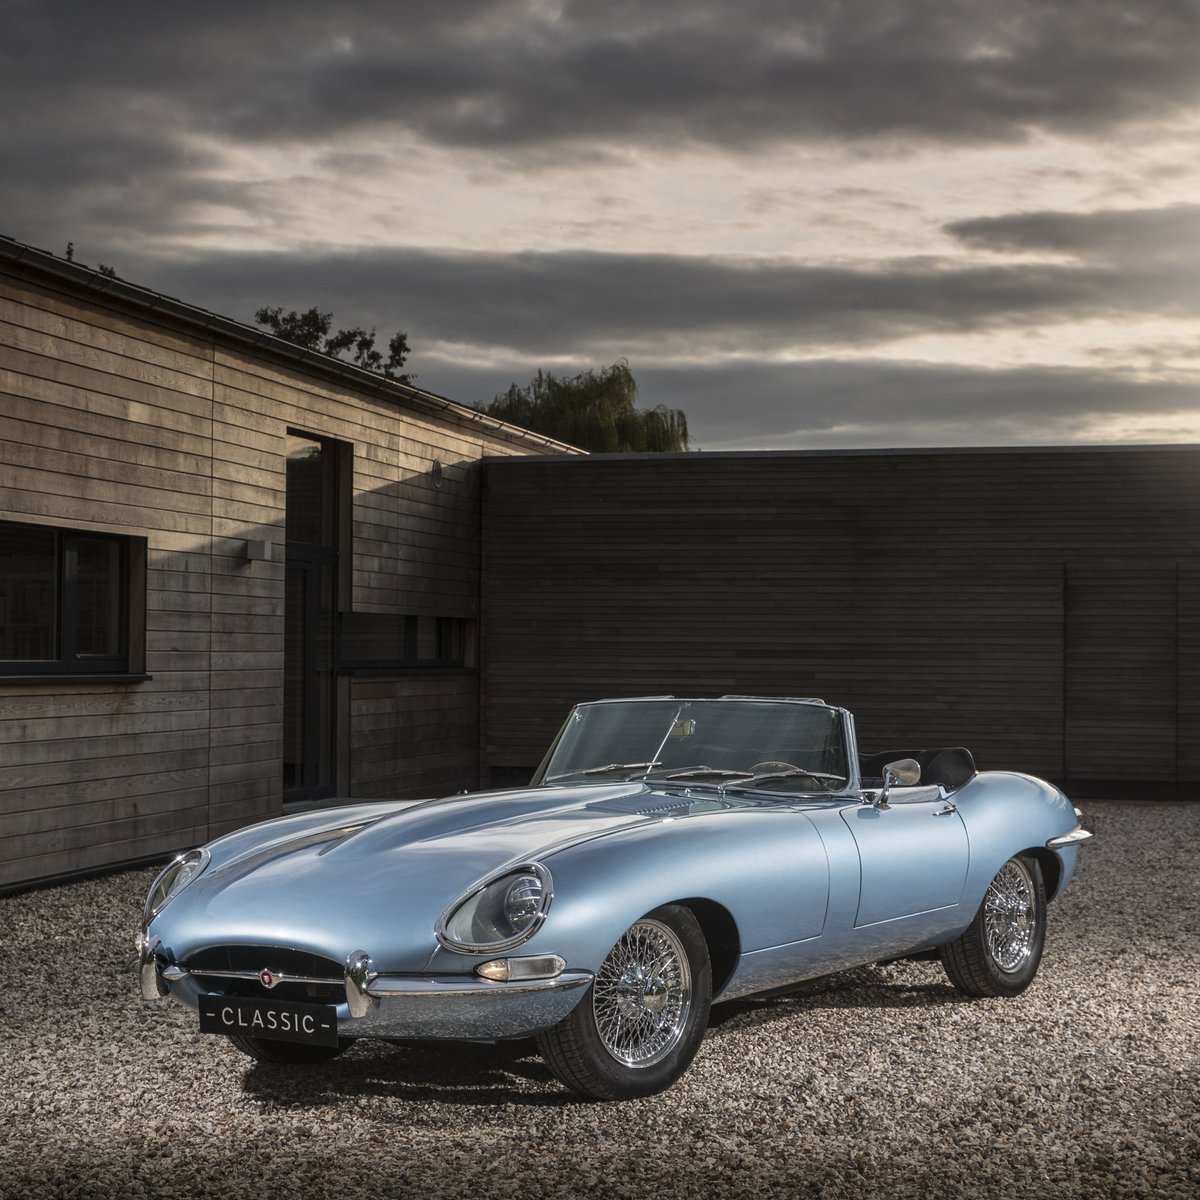 Electric Icon: Come and see the stunning Electric E-type Zero at #JLRTechFest https://t.co/eeFC5eptZ0